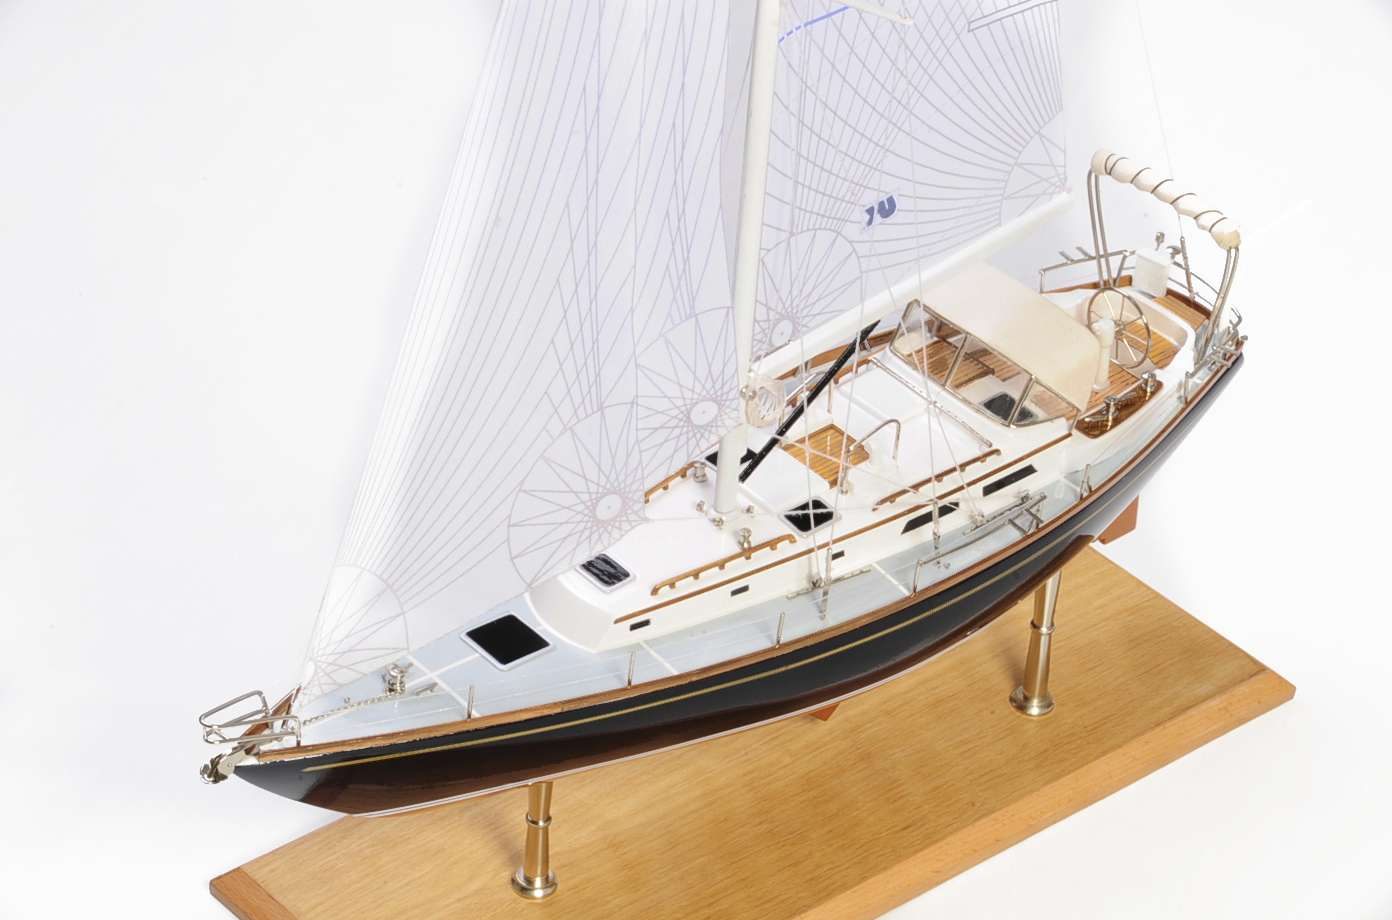 1438-4712-Indigo-Moth-Model-Yacht